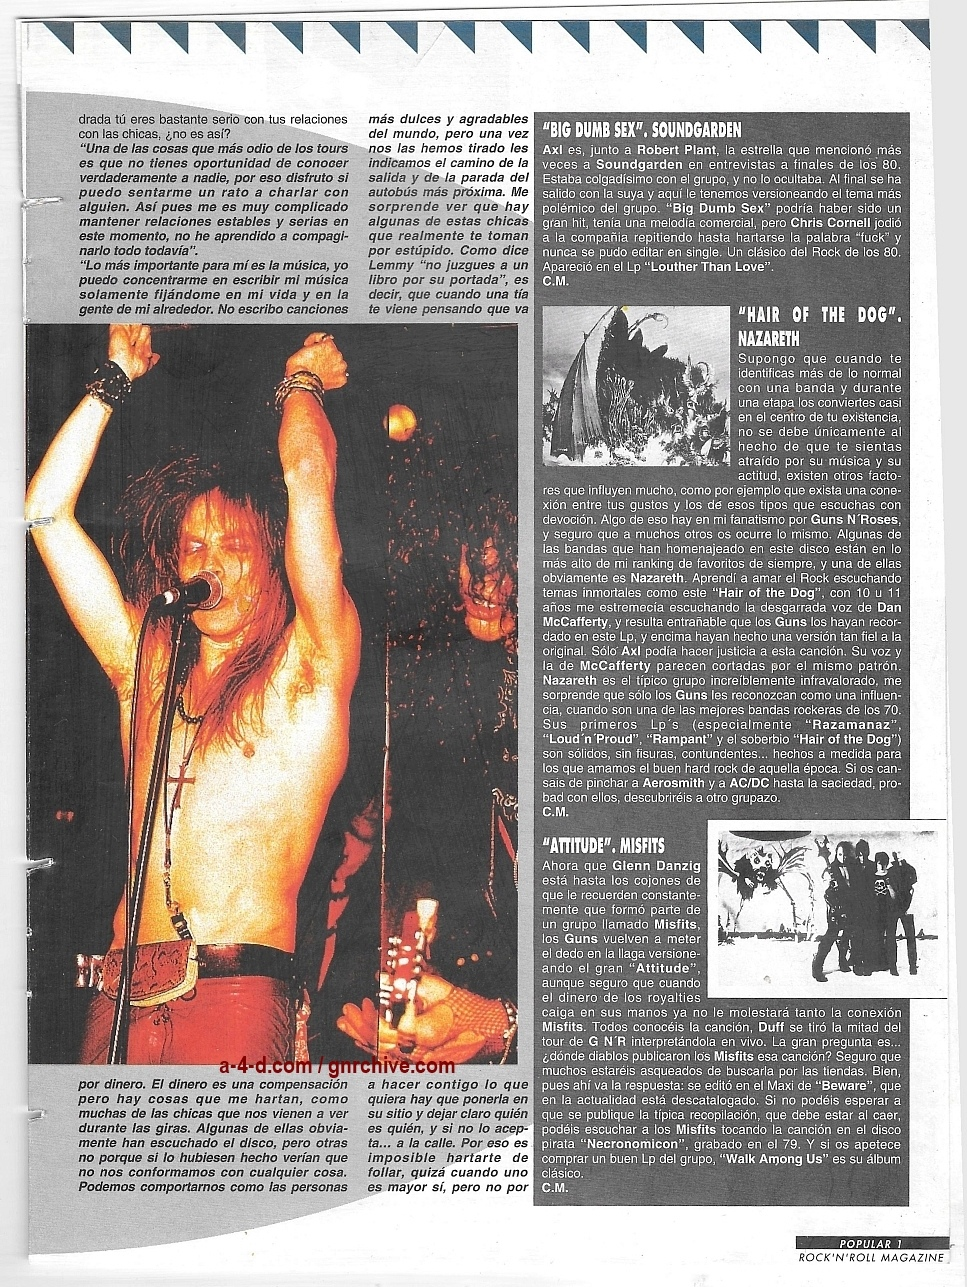 1994.01.DD - Popular 1 - Guns N' Roses Pay Tribute To Their Heroes (Duff) 1993_160